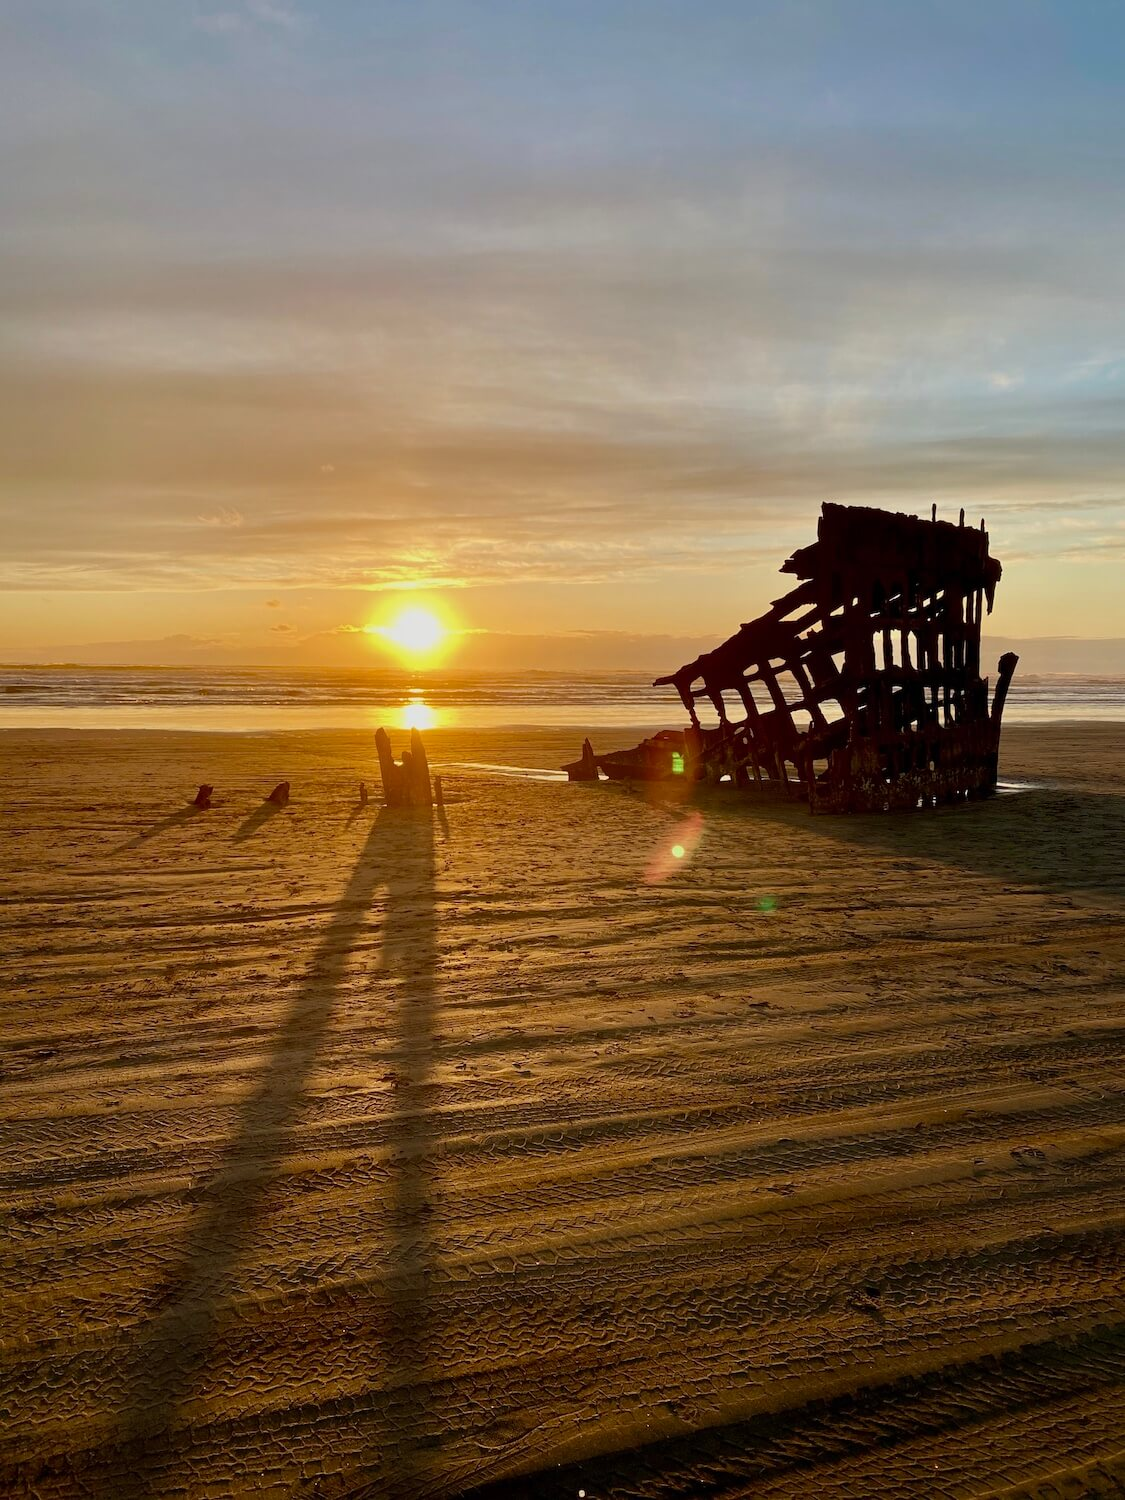 The Peter Irdale shipwreck sits wedged into the sandy beach at Fort Stevens State Park, near Astoria as the sun sets beyond the horizon of the Pacific Ocean. The glow is yellowish as the clouds and upper sky fight to keep their blue color.